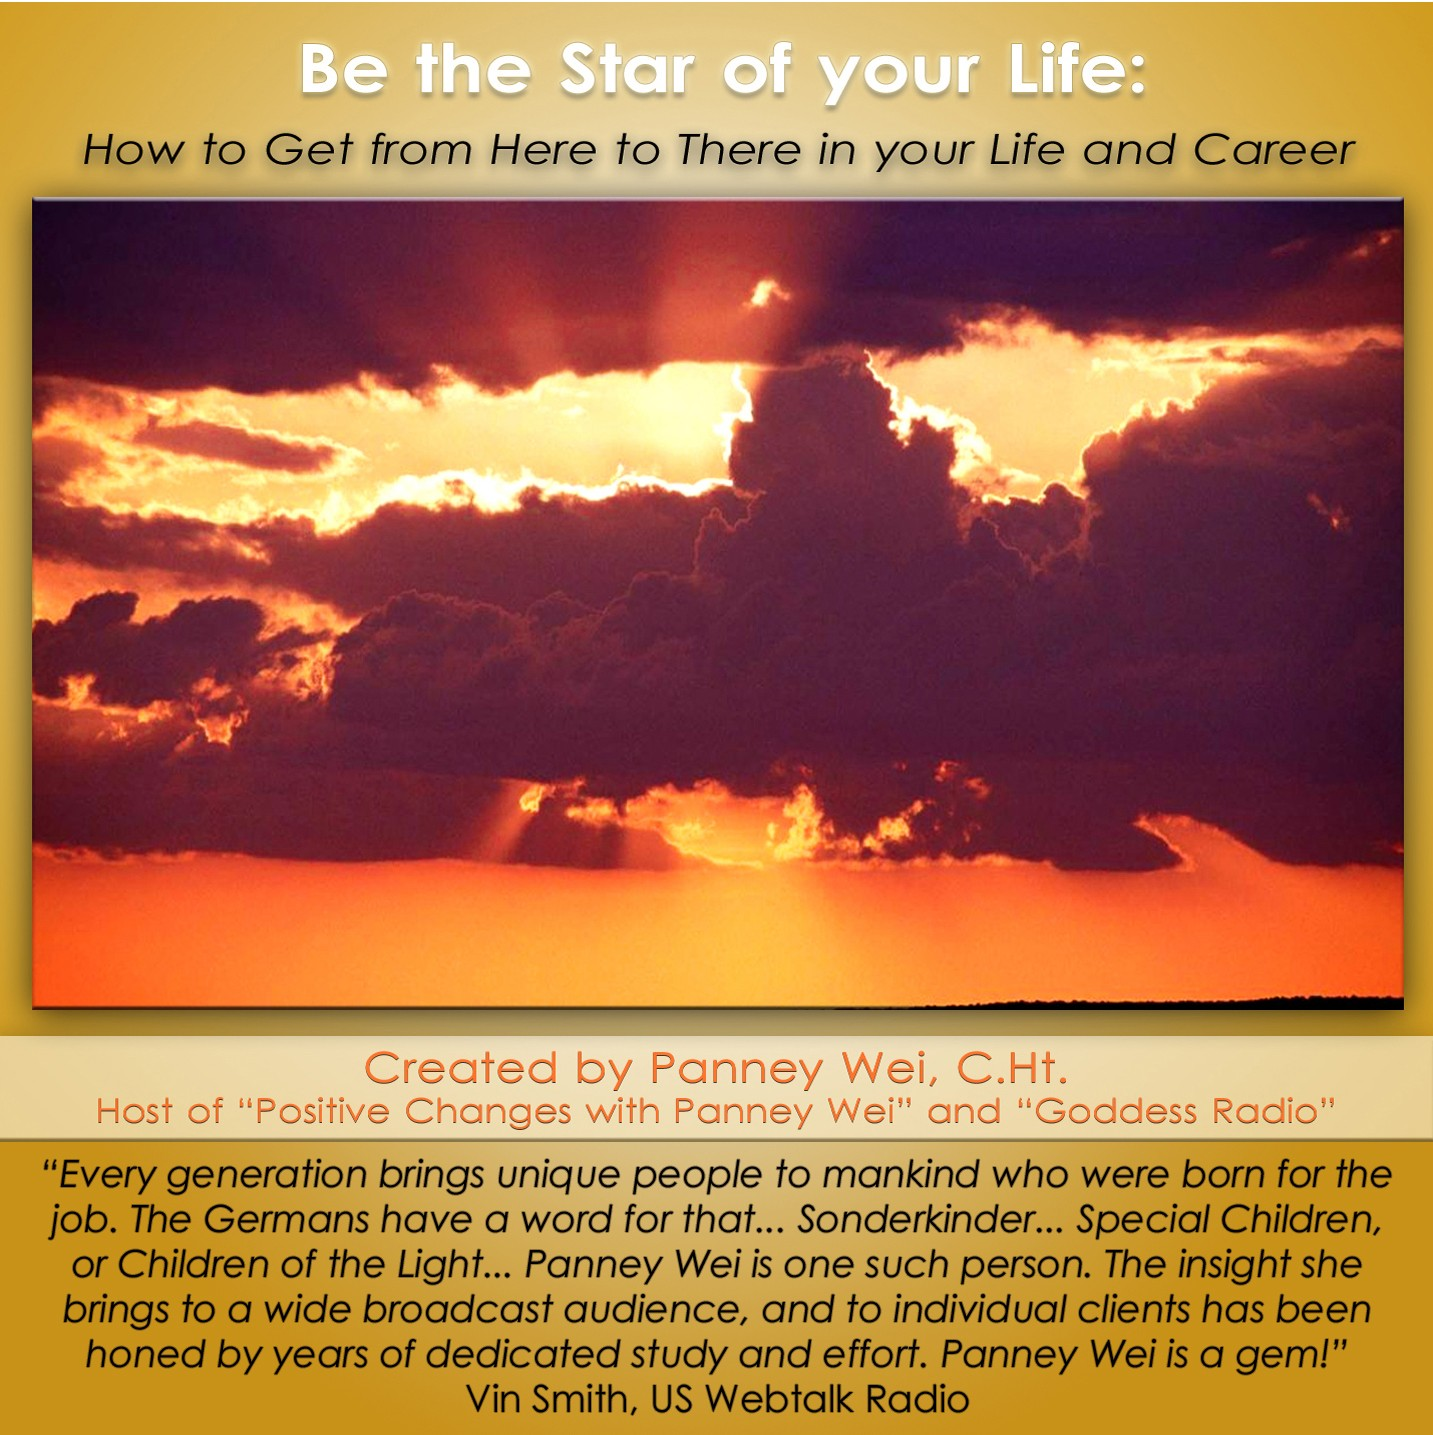 Be the Star of Your Life: How to Get from Here to There in Your Life and Career